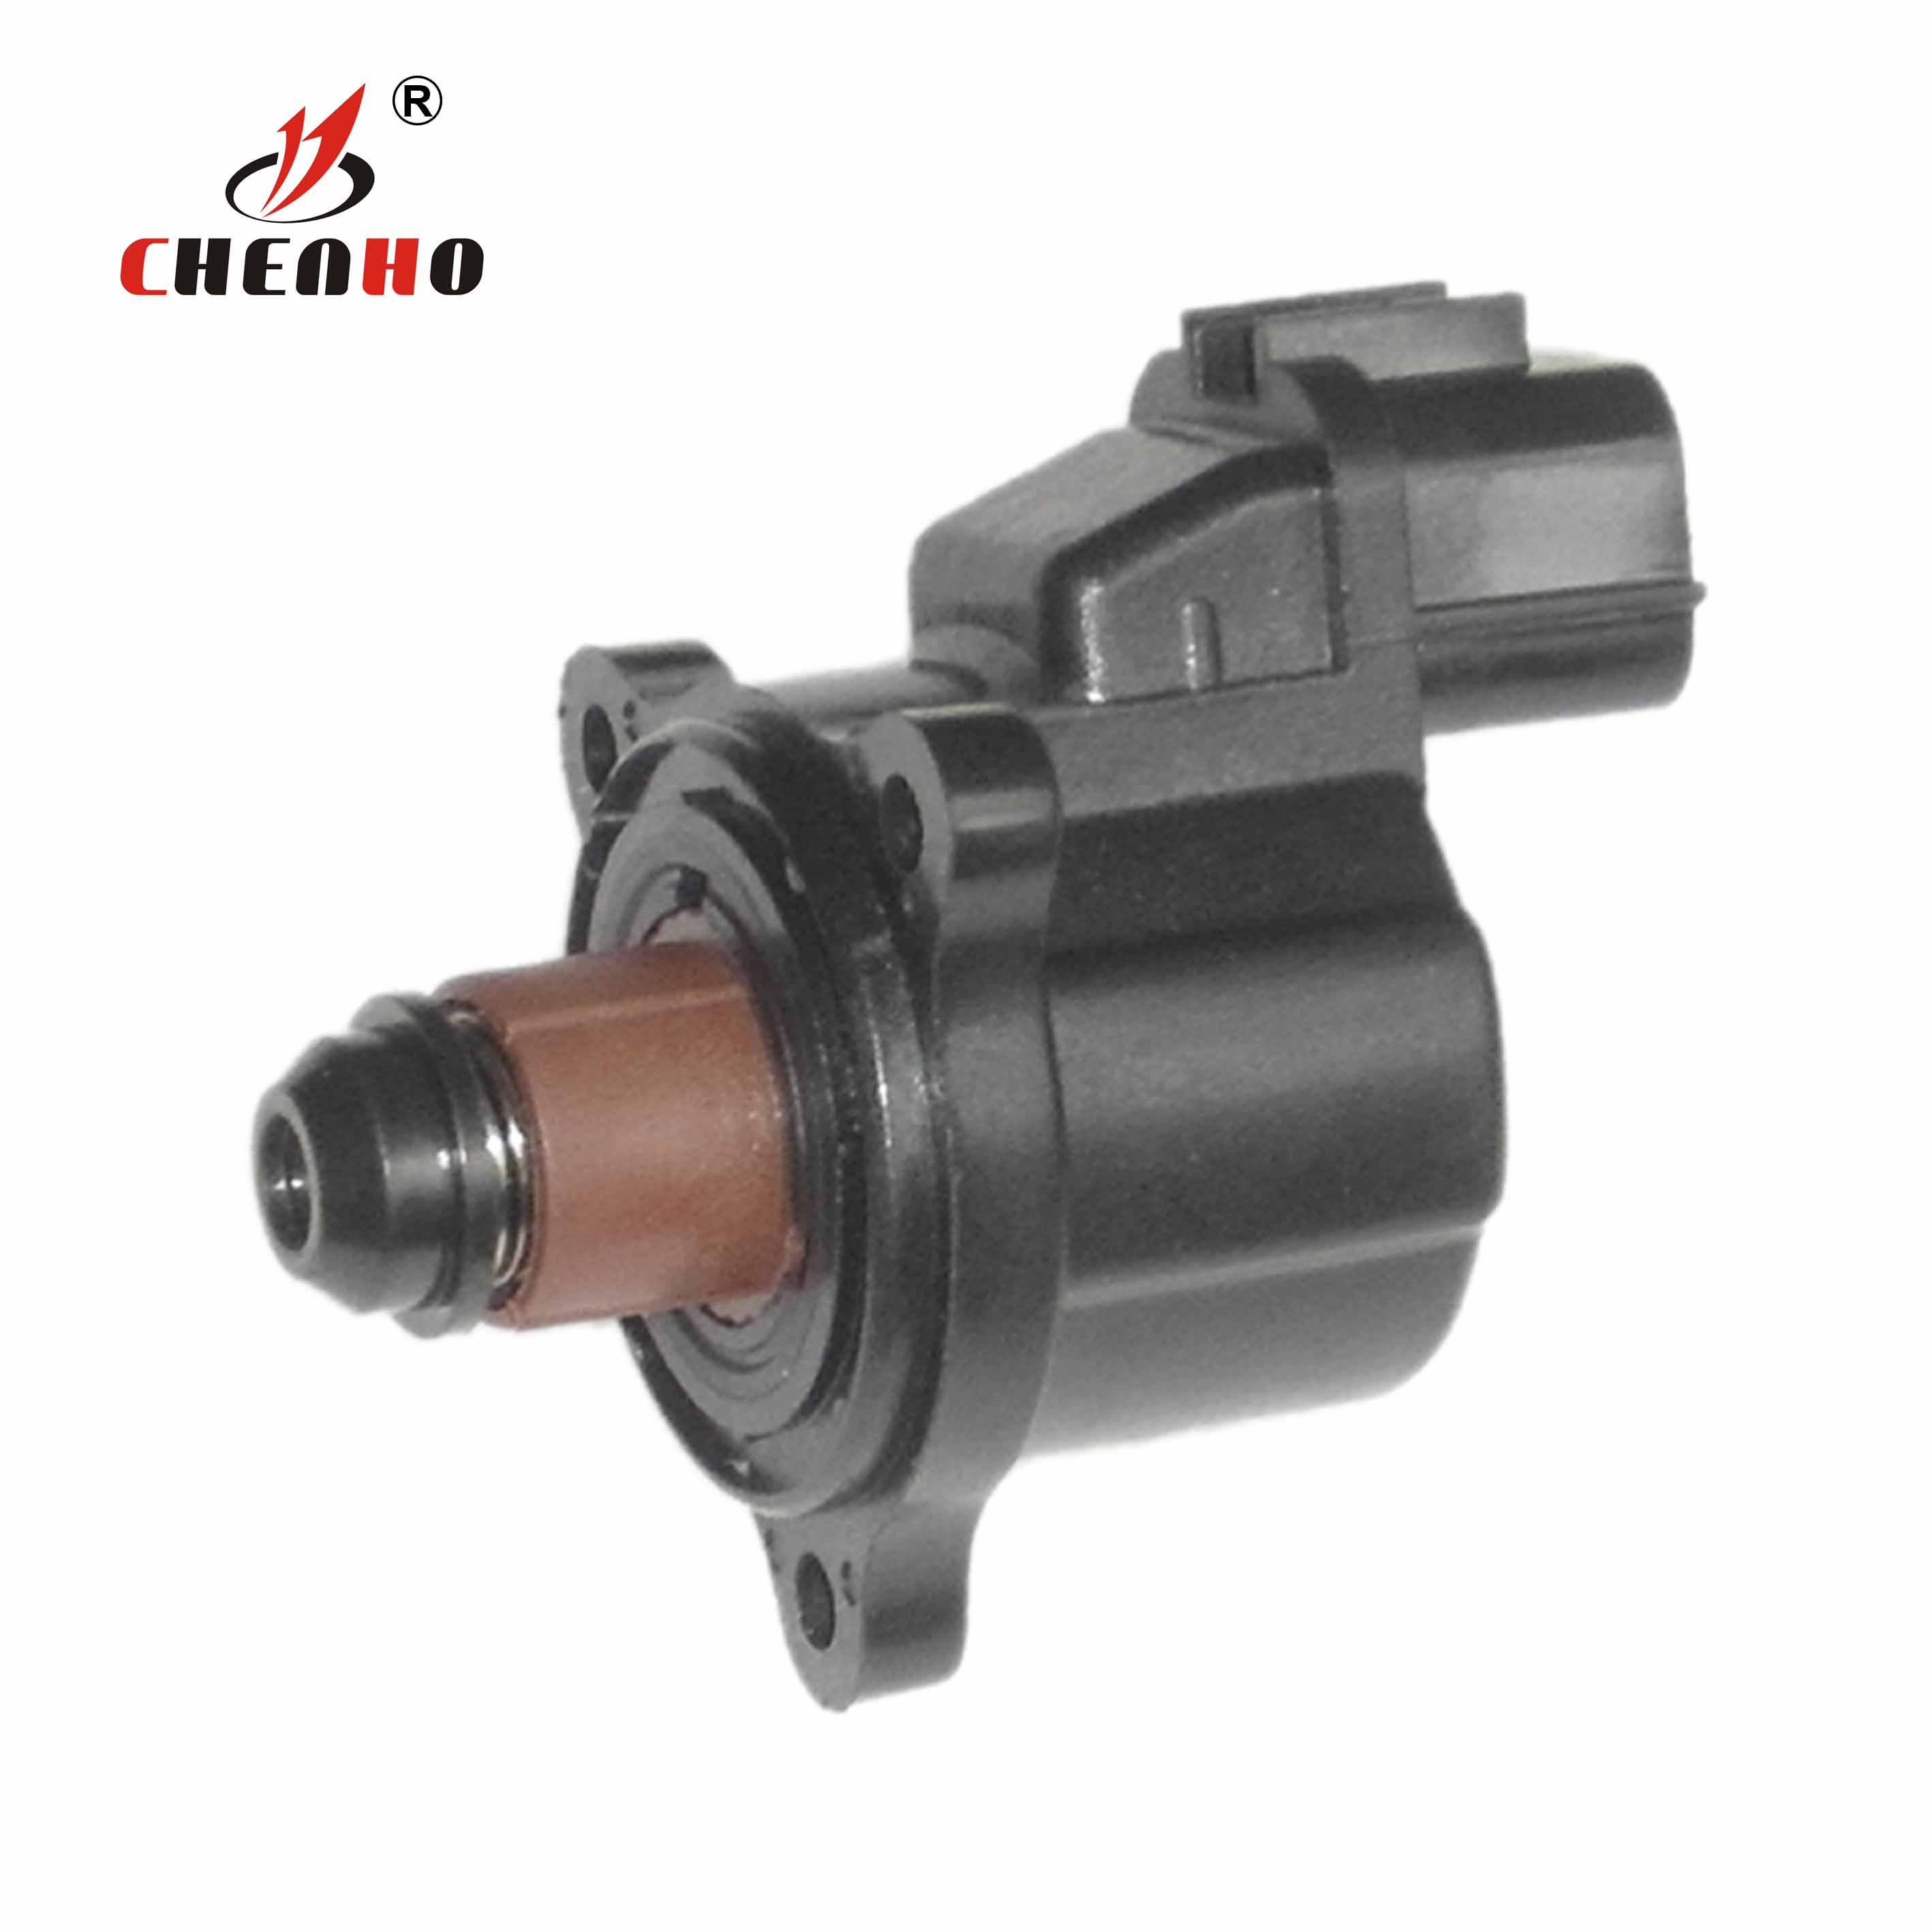 High quality MD628174 MD613992 MD619857 1450A116  New Idle Air Control Valve IACV fits For MITSUBISHI SAIMA for MITSUBISH LANCER